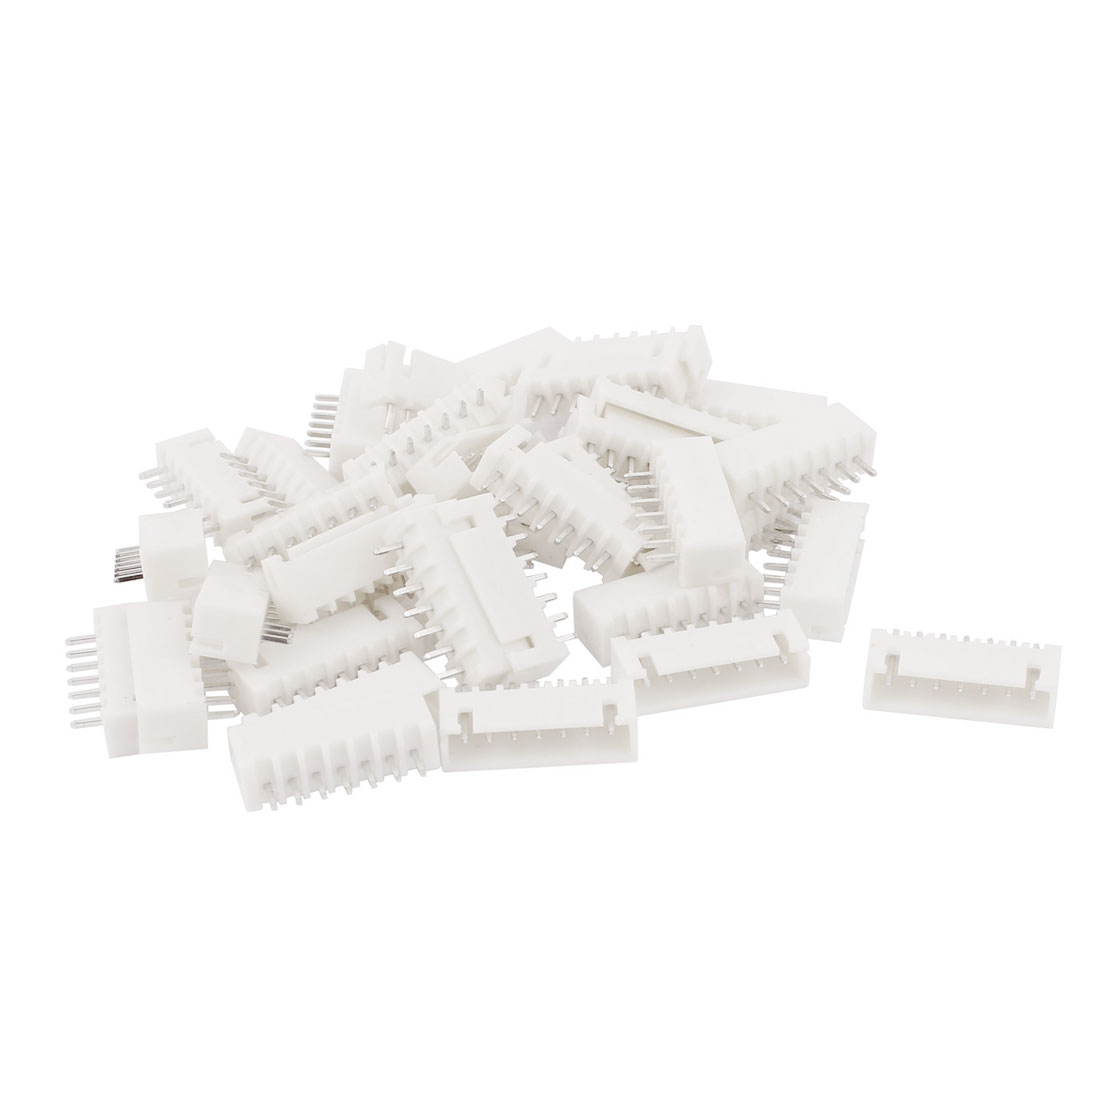 2.54mm Pitch Male 7 Pins Single Row JST XH Series Connector Header White 37Pcs